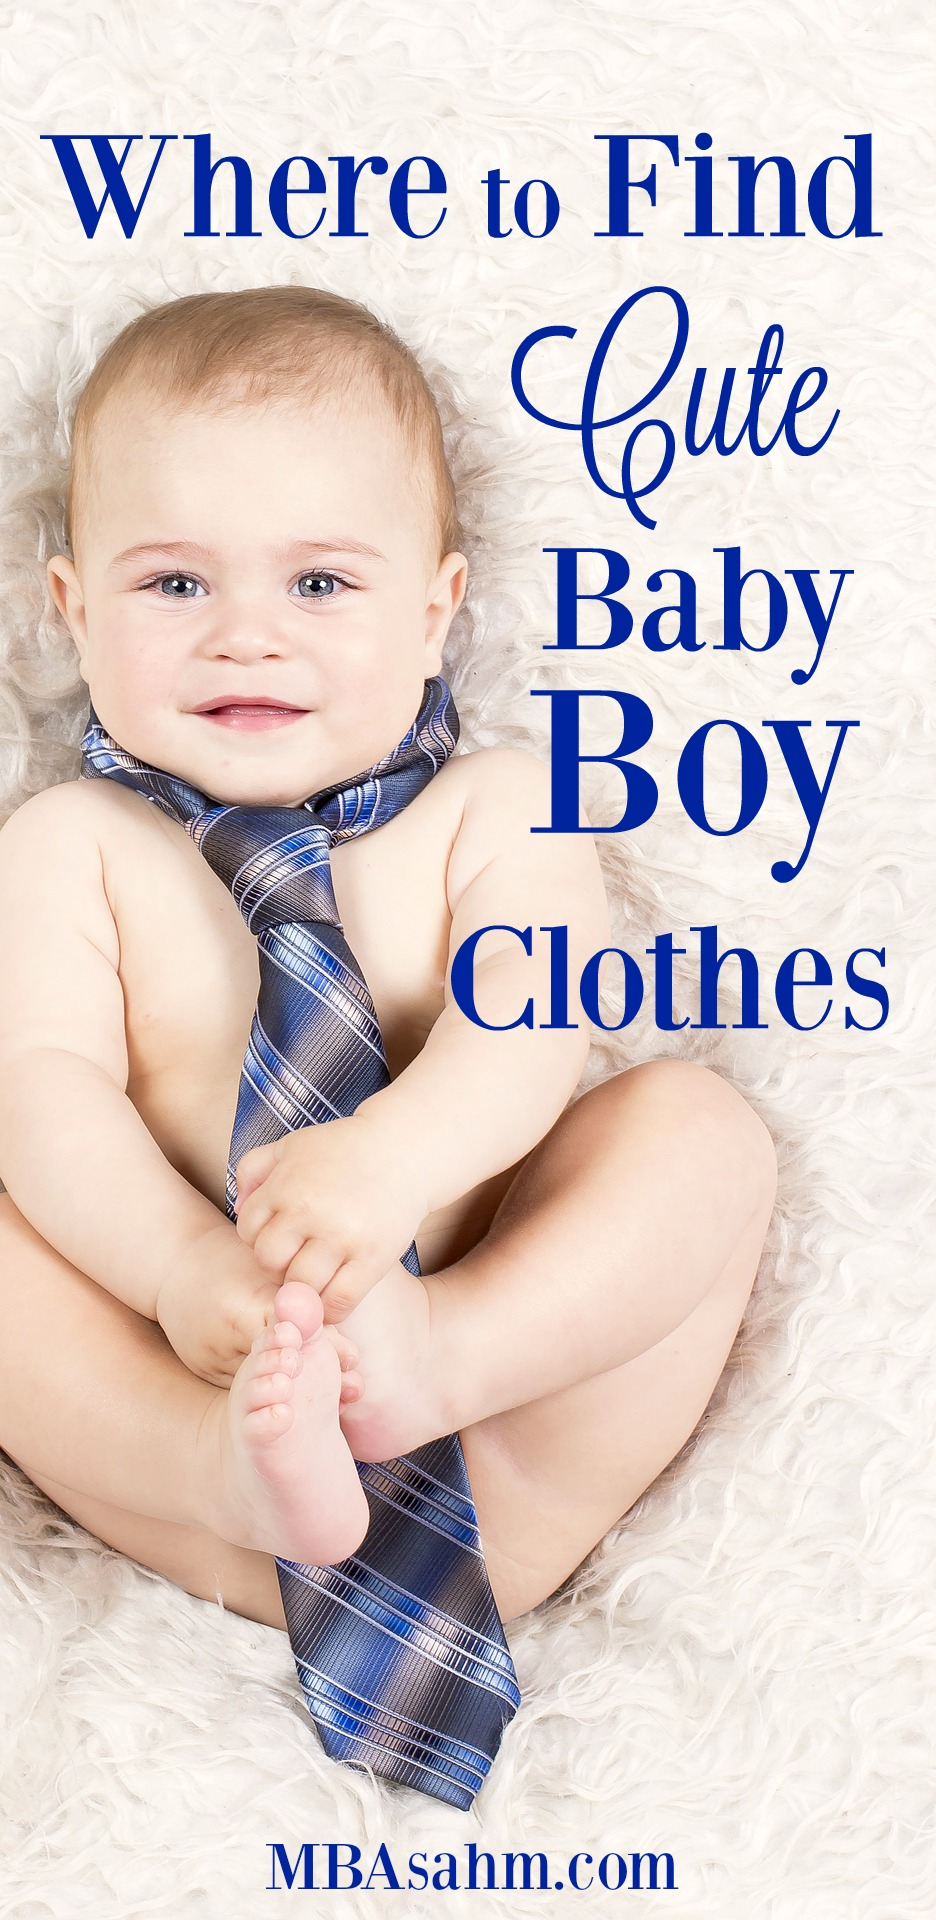 If you're wondering where to find cute baby boy clothes, this list is for you!  They have adorable clothing options for boys that you won't find anywhere else.